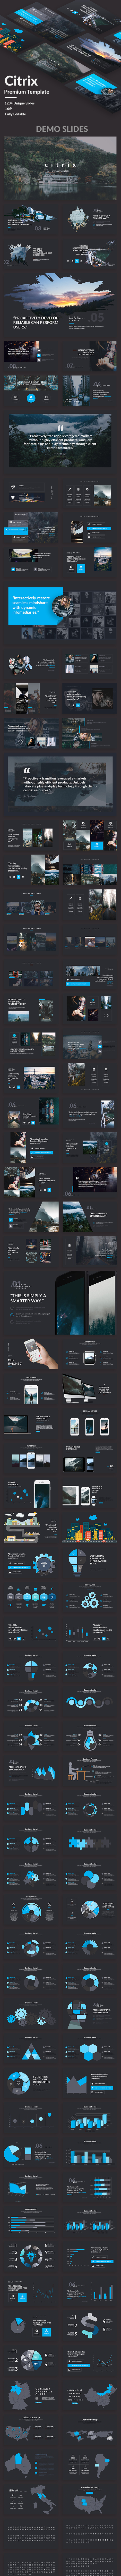 GraphicRiver Citrix Premium Projext Google Slide Template 20947720